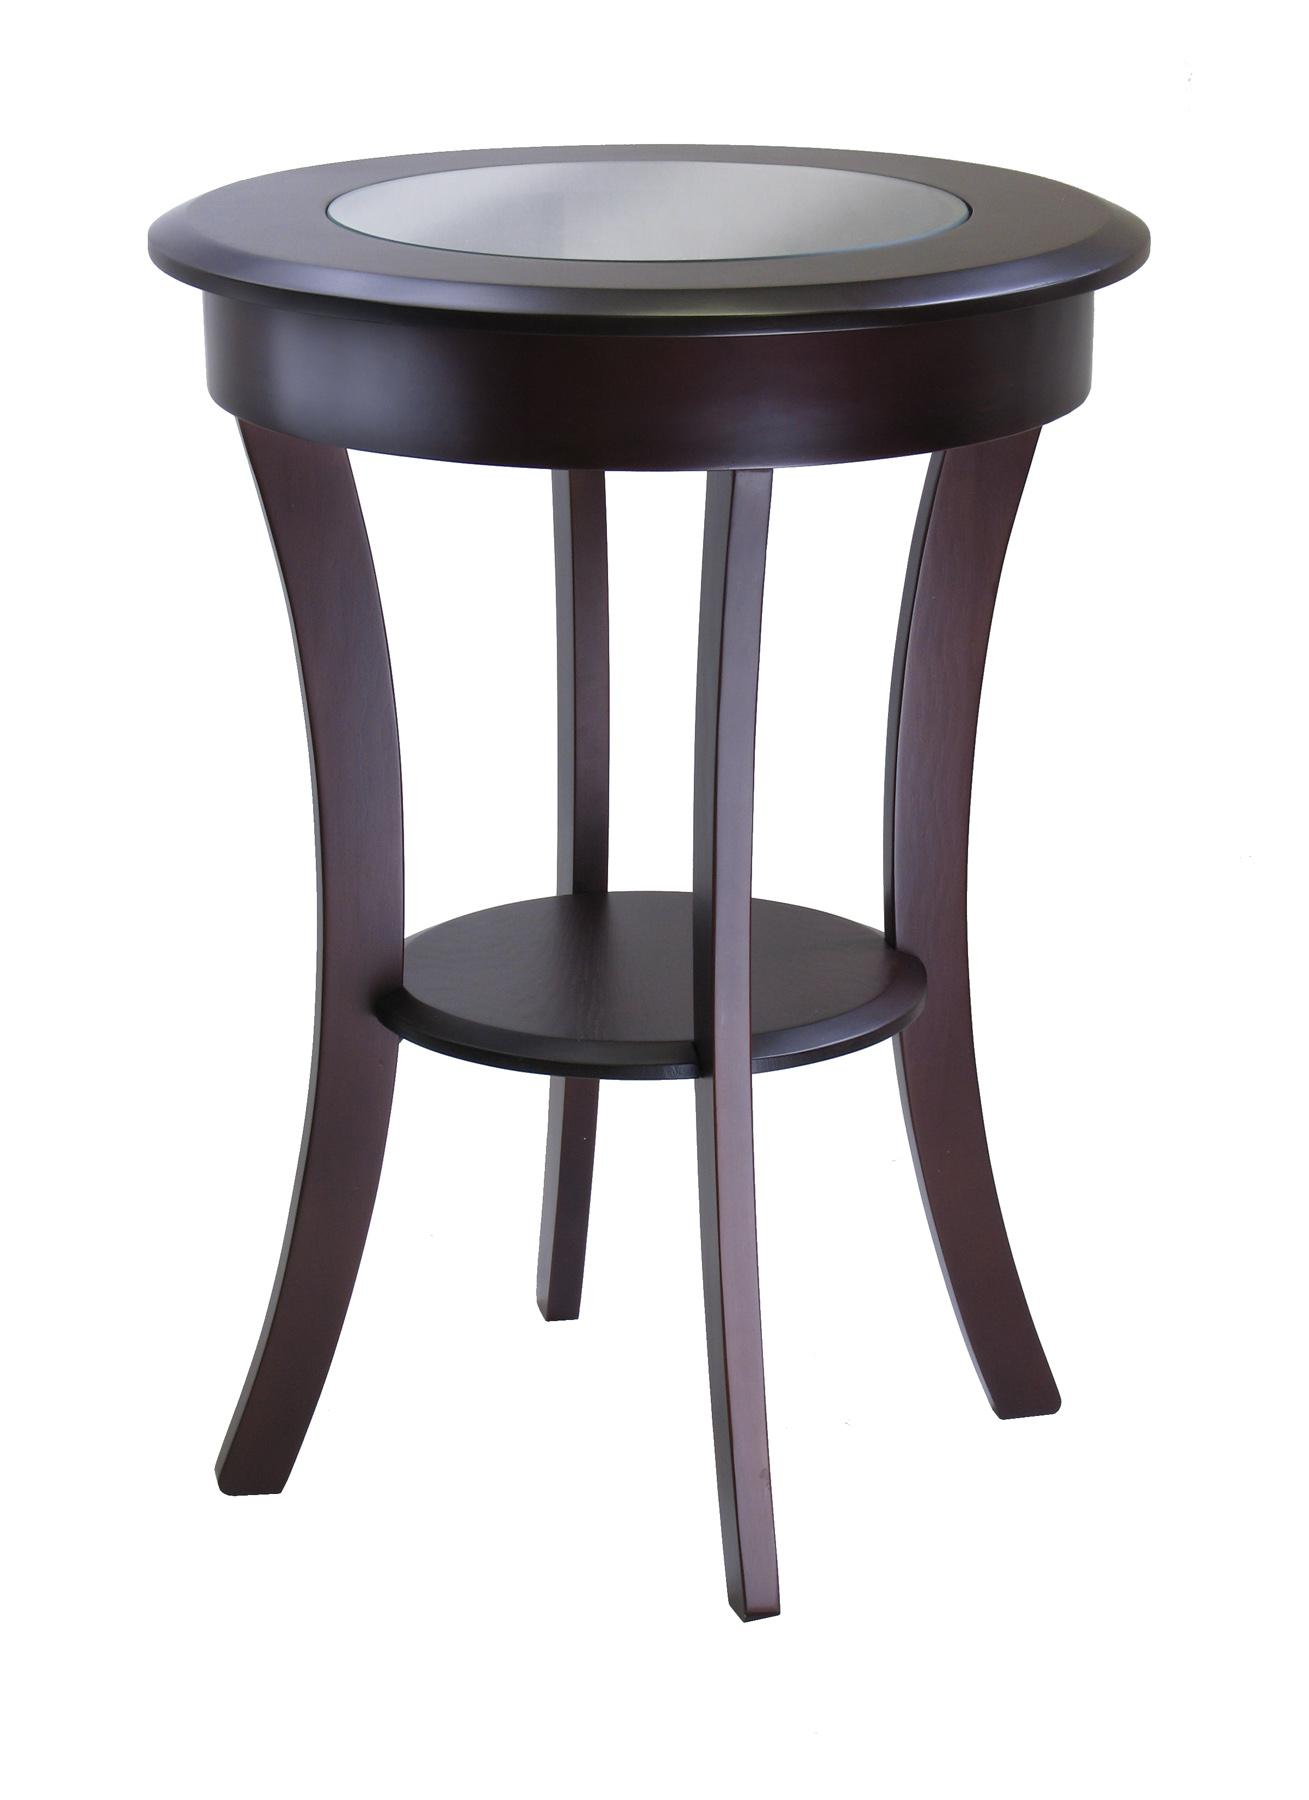 winsome wood cassie round accent table with glass ojcommerce american made furniture brown leather chair butler side oak door strip patio cover ott coffee outdoor winnipeg teal